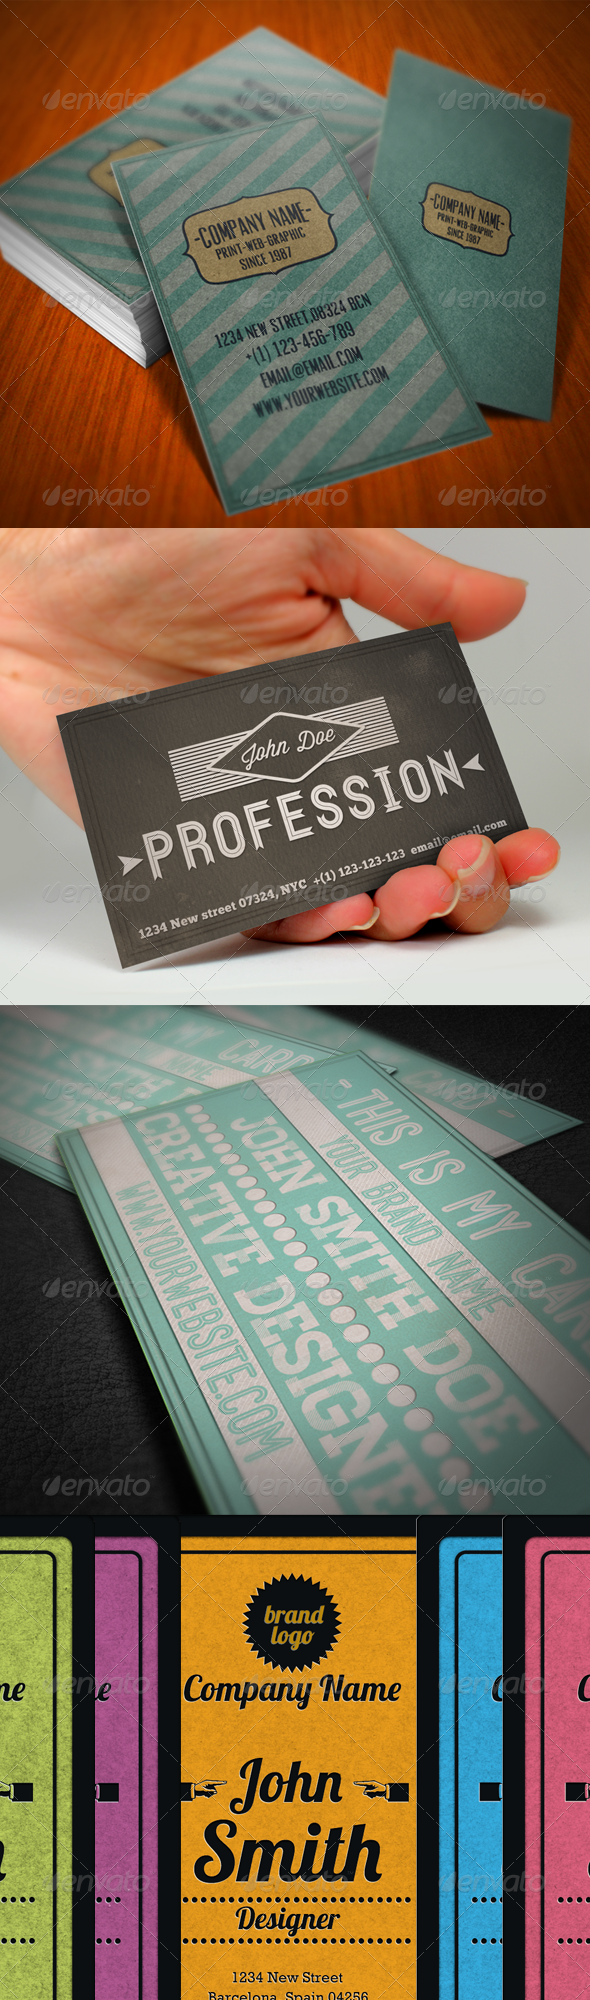 Vintage Business Card Bundle - Retro/Vintage Business Cards